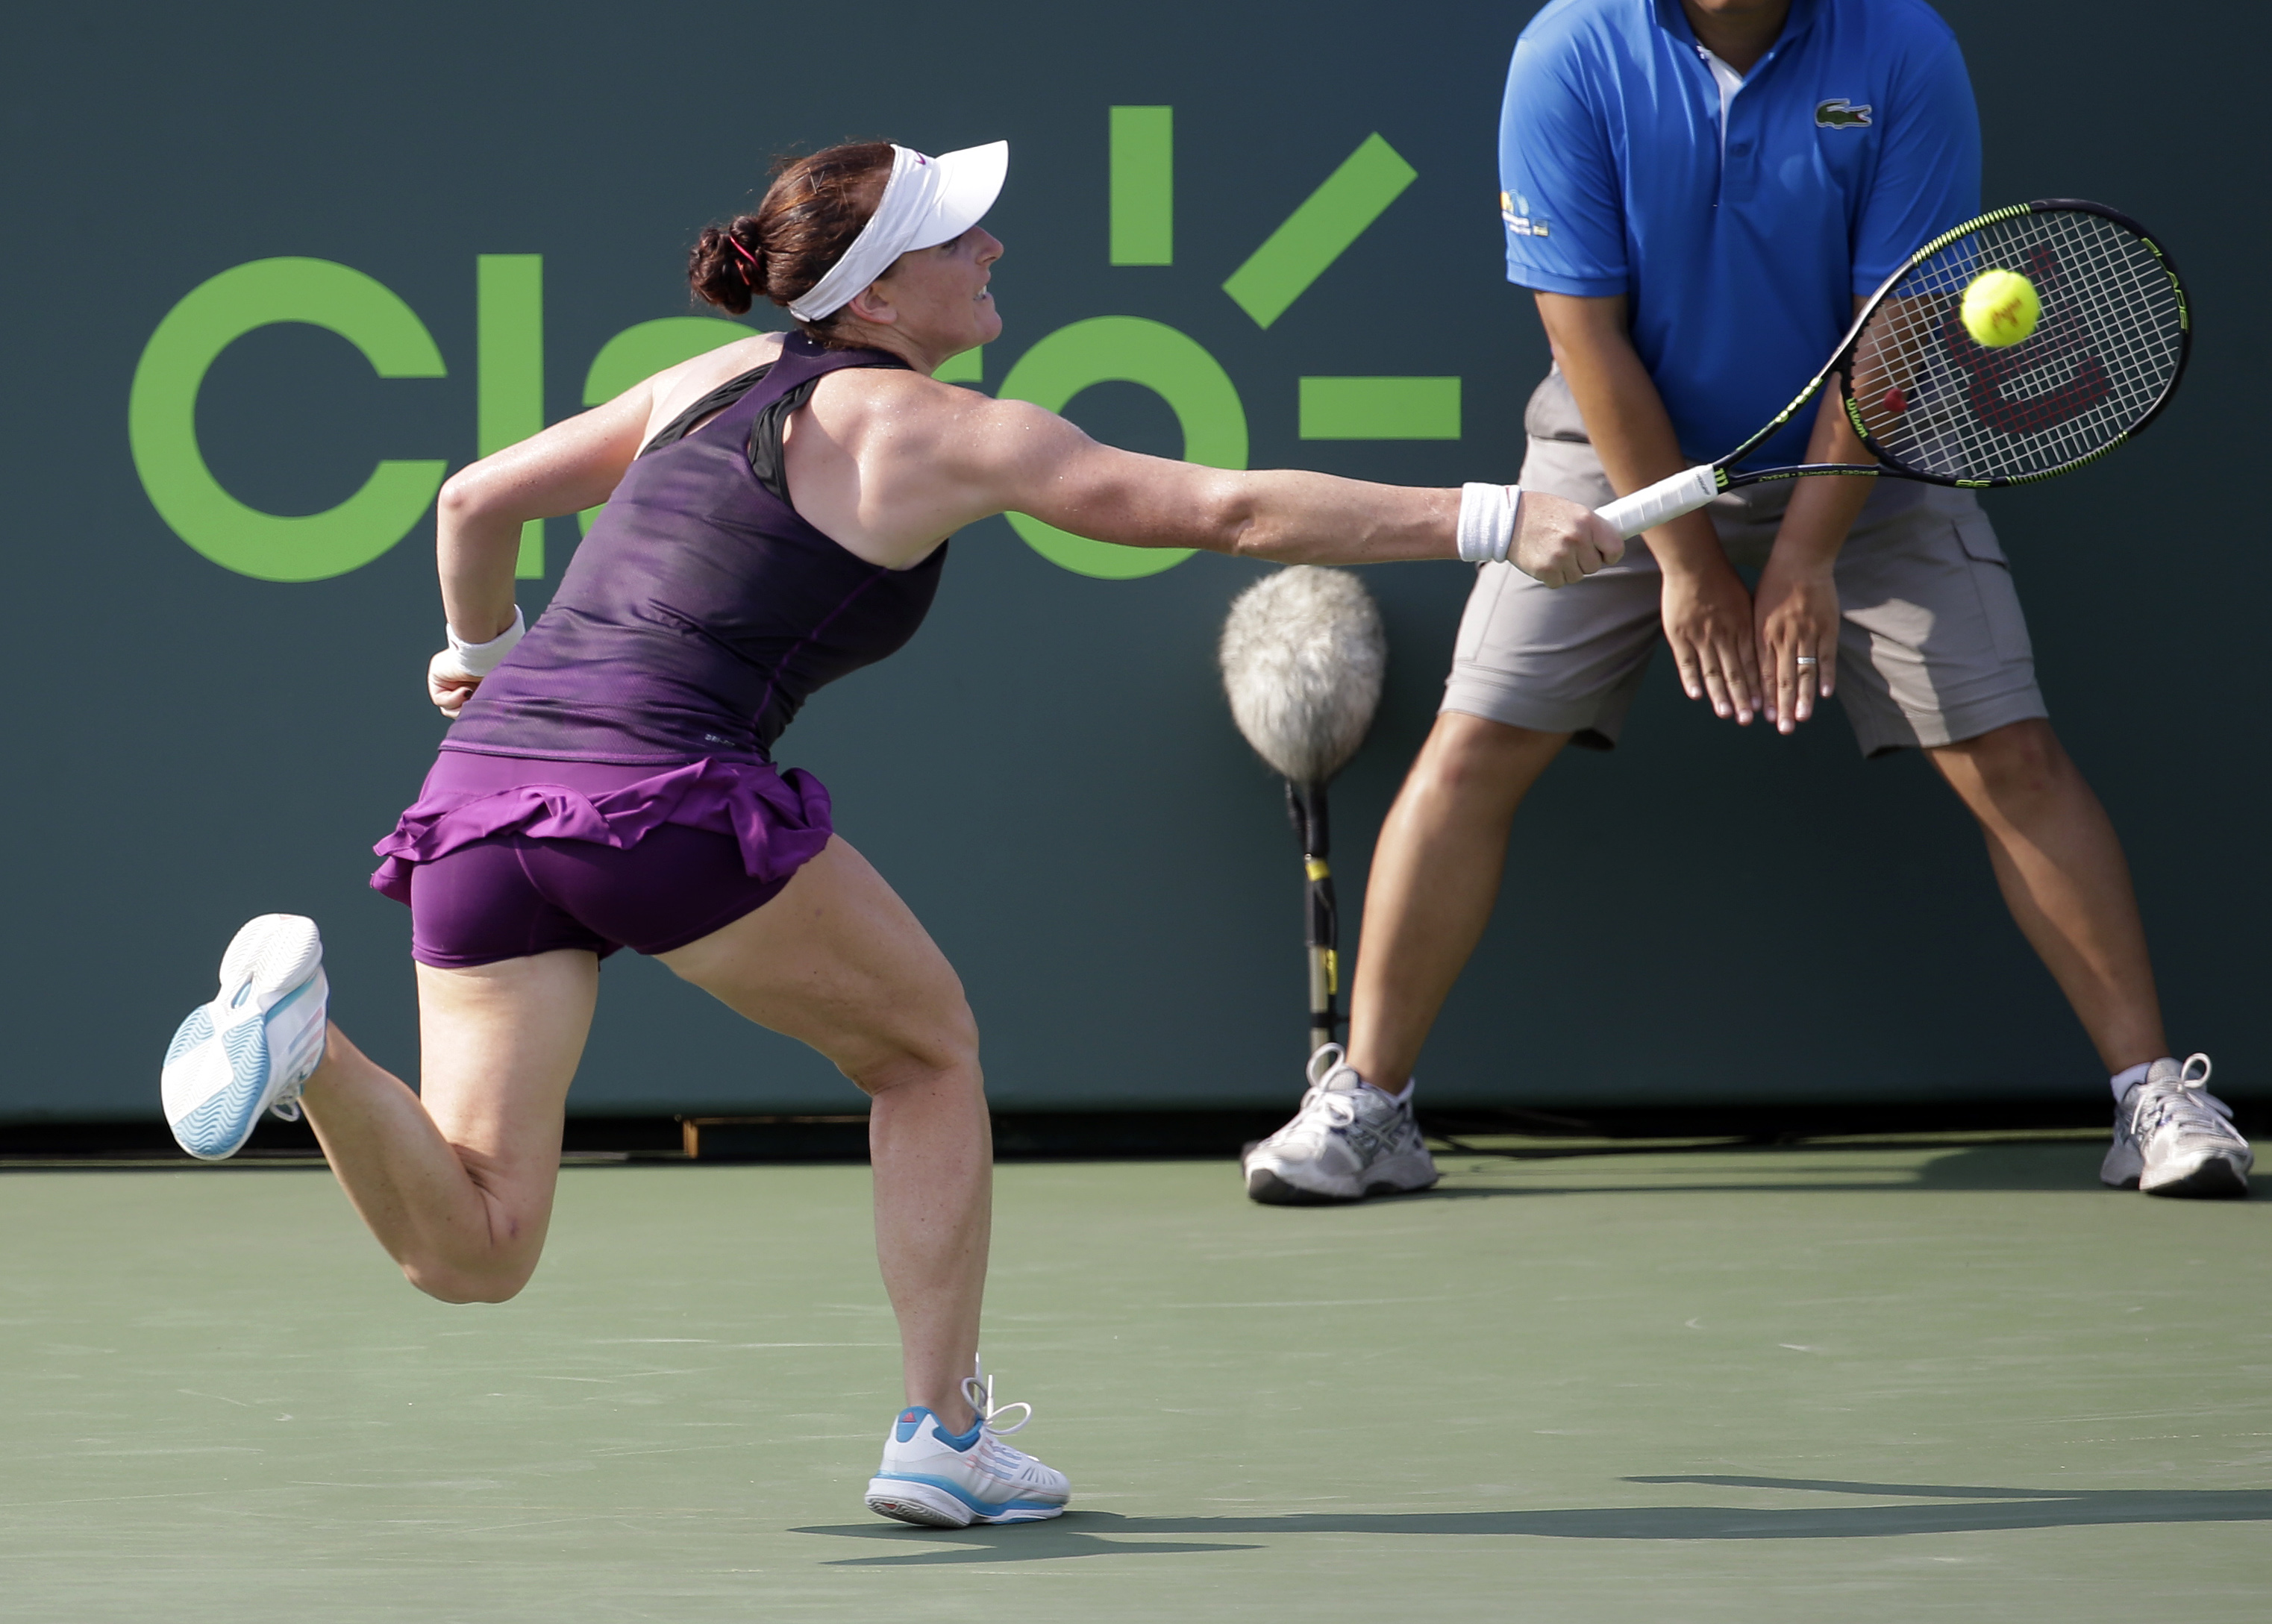 15-year-old American CiCi Bellis advances at Miami Open